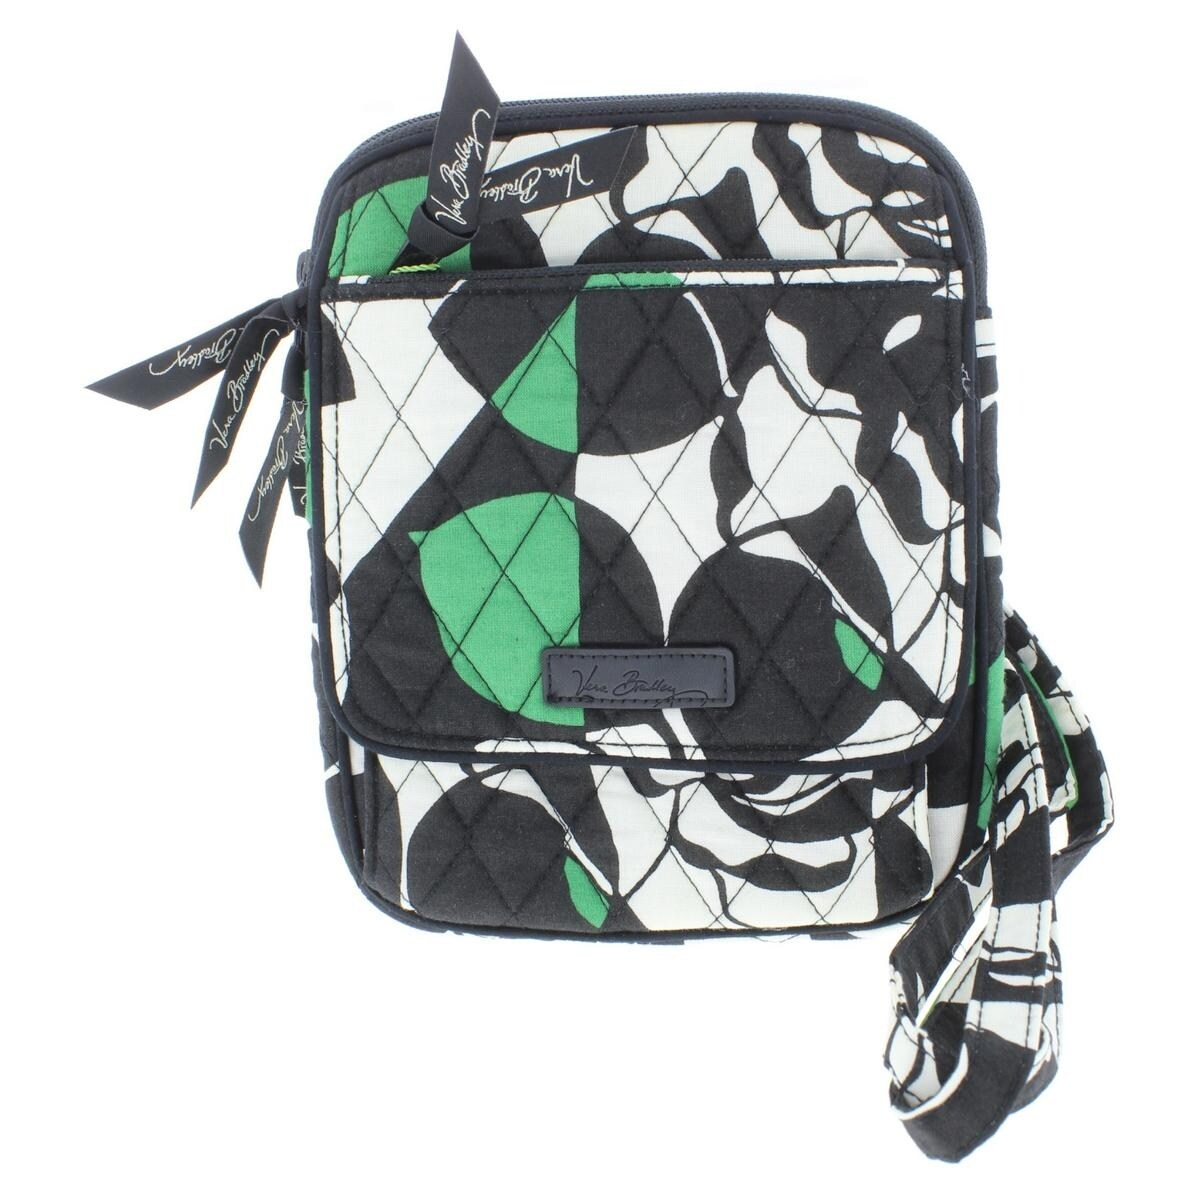 a8688ef313dc Shop Vera Bradley Womens Hipster Crossbody Handbag Quilted Mini - Free  Shipping On Orders Over  45 - Overstock - 24090298